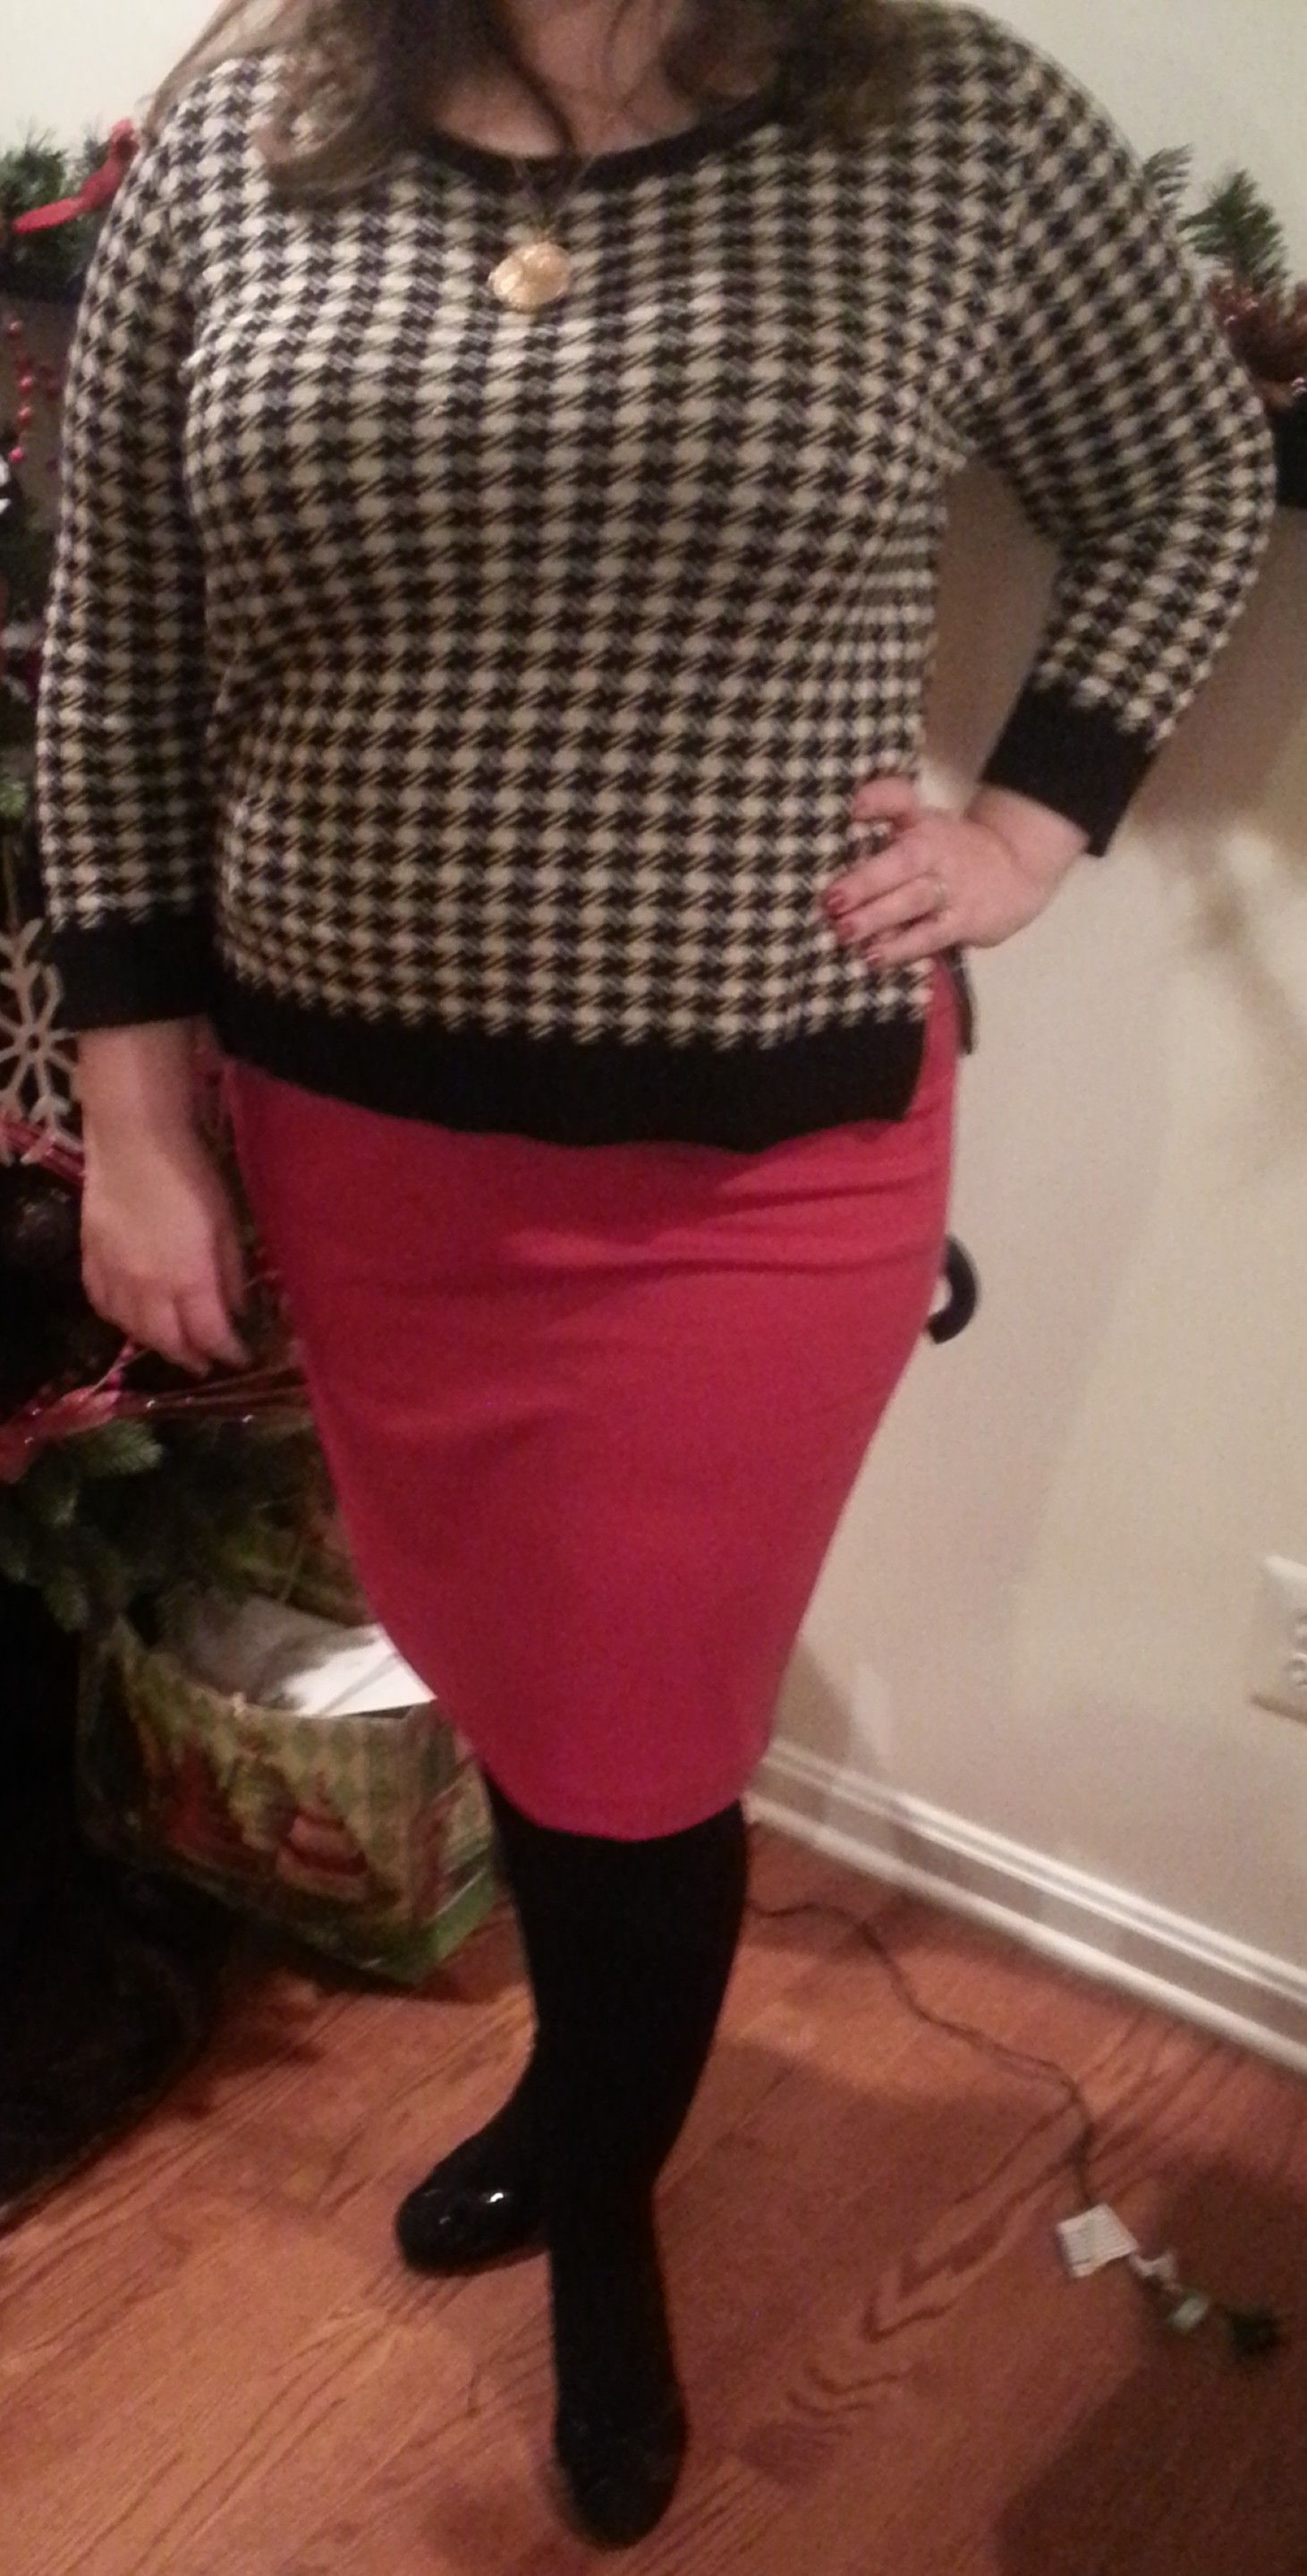 06dfdc1da0d77 Kohl's black and white houndstooth sweater; red ponte pencil skirt; black  tights; Naturalizer black suede pumps; gold tone locket;  #365daywardrobeplus ...